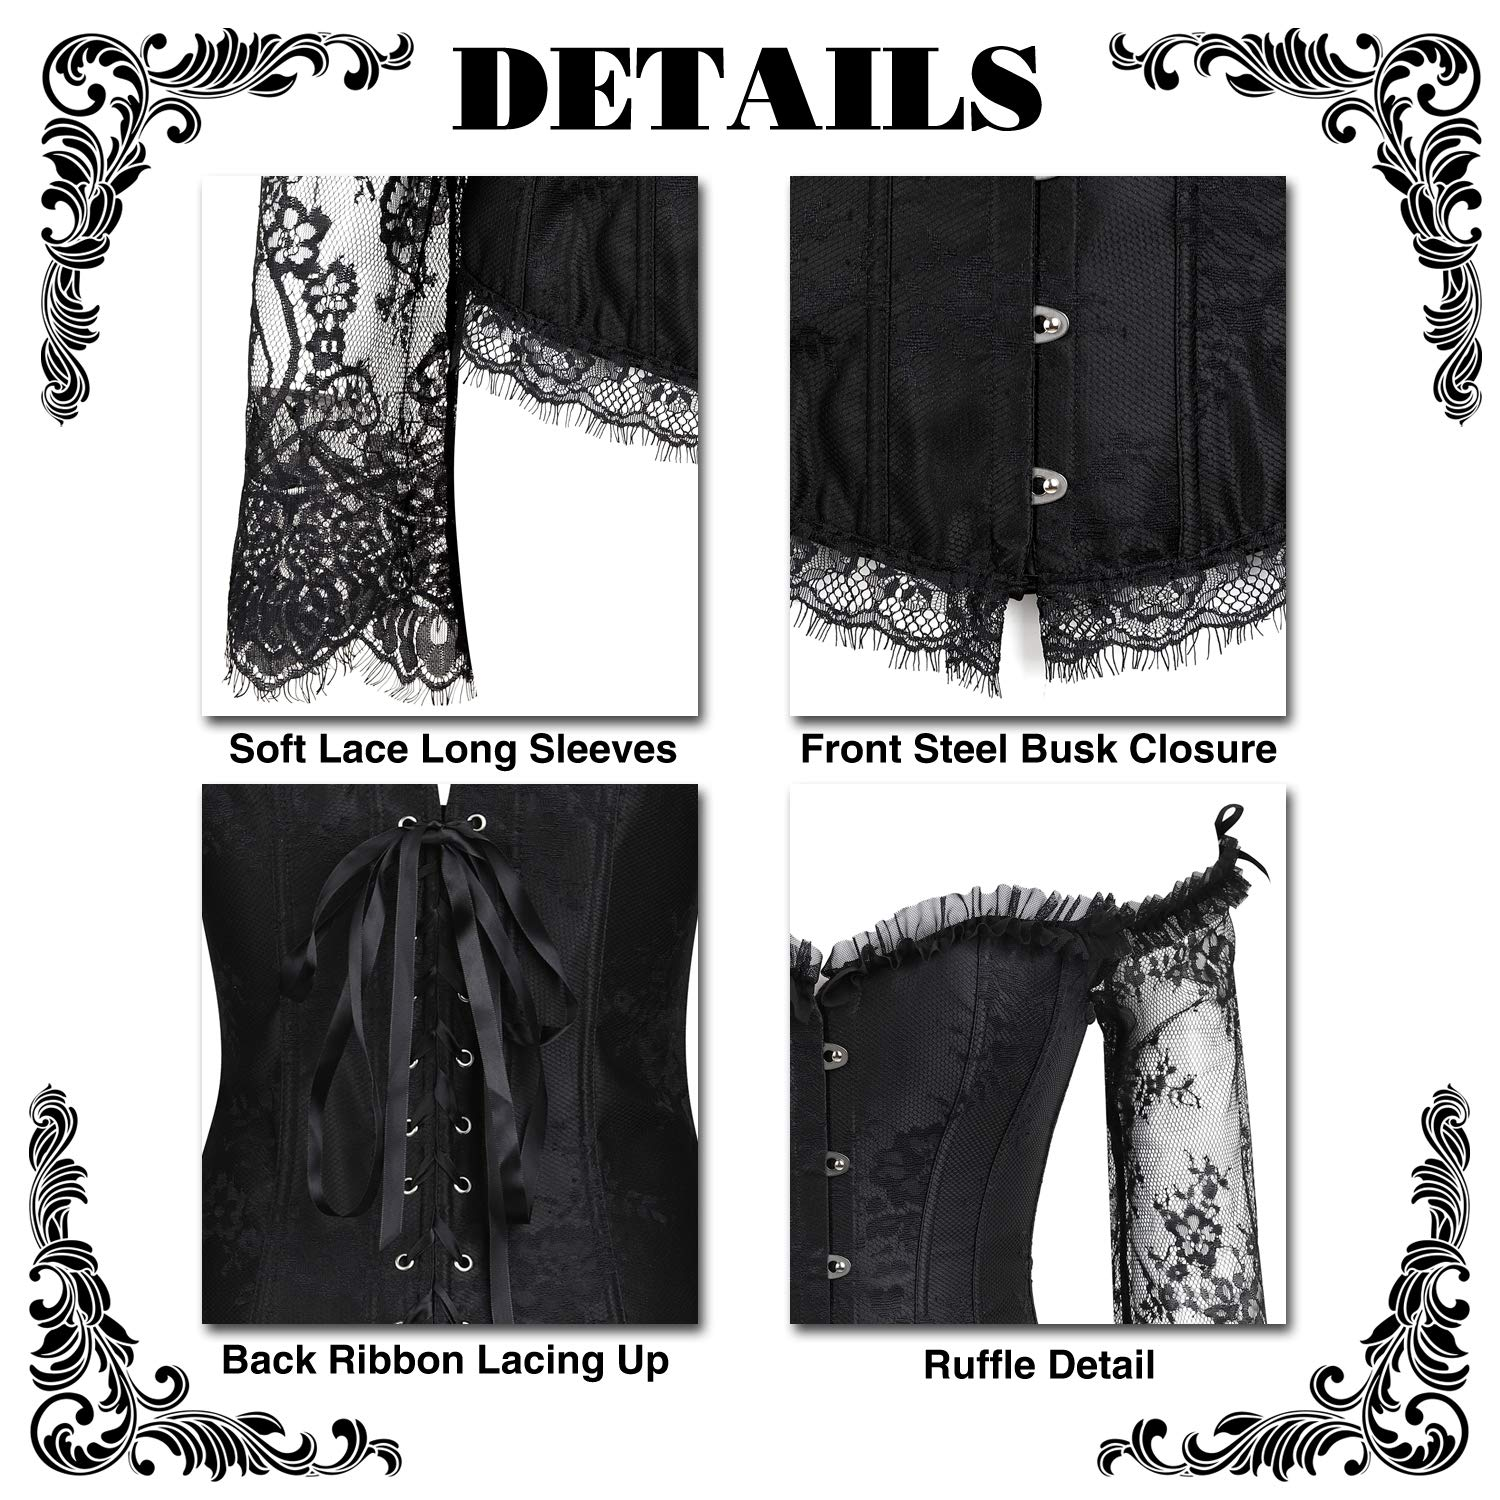 6bd9cd2020 lttcbro Women s Gothic Fashion Off Shoulder Lace Corset Steampunk Clothing  with Long Sleeves at Amazon Women s Clothing store